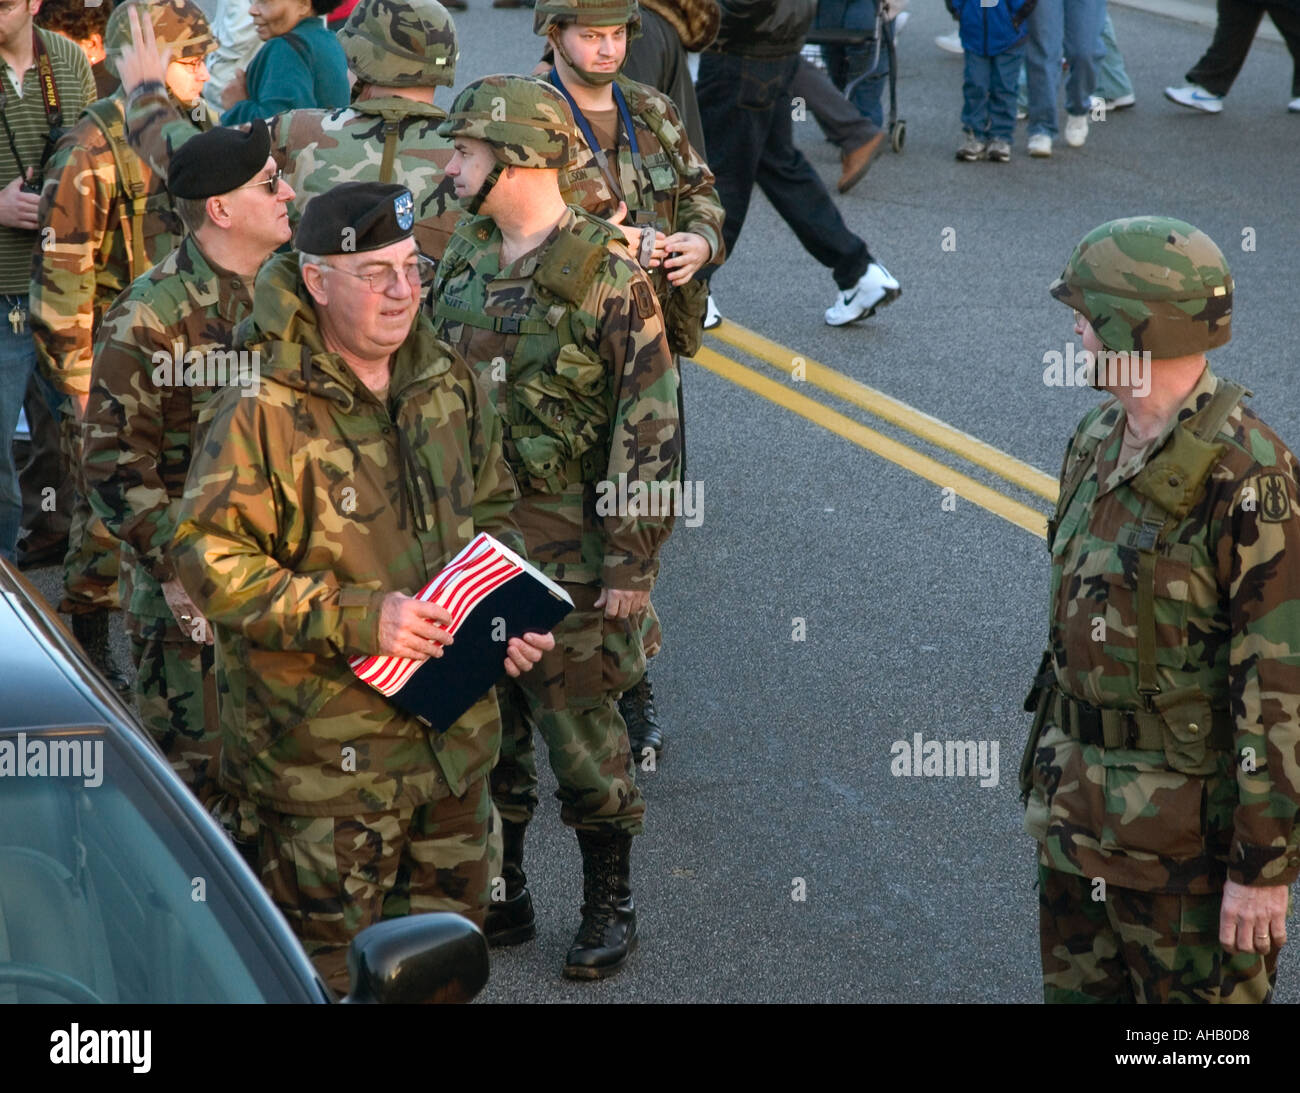 National Guard Unit Preparing for Deployment to Iraq. USA - Stock Image